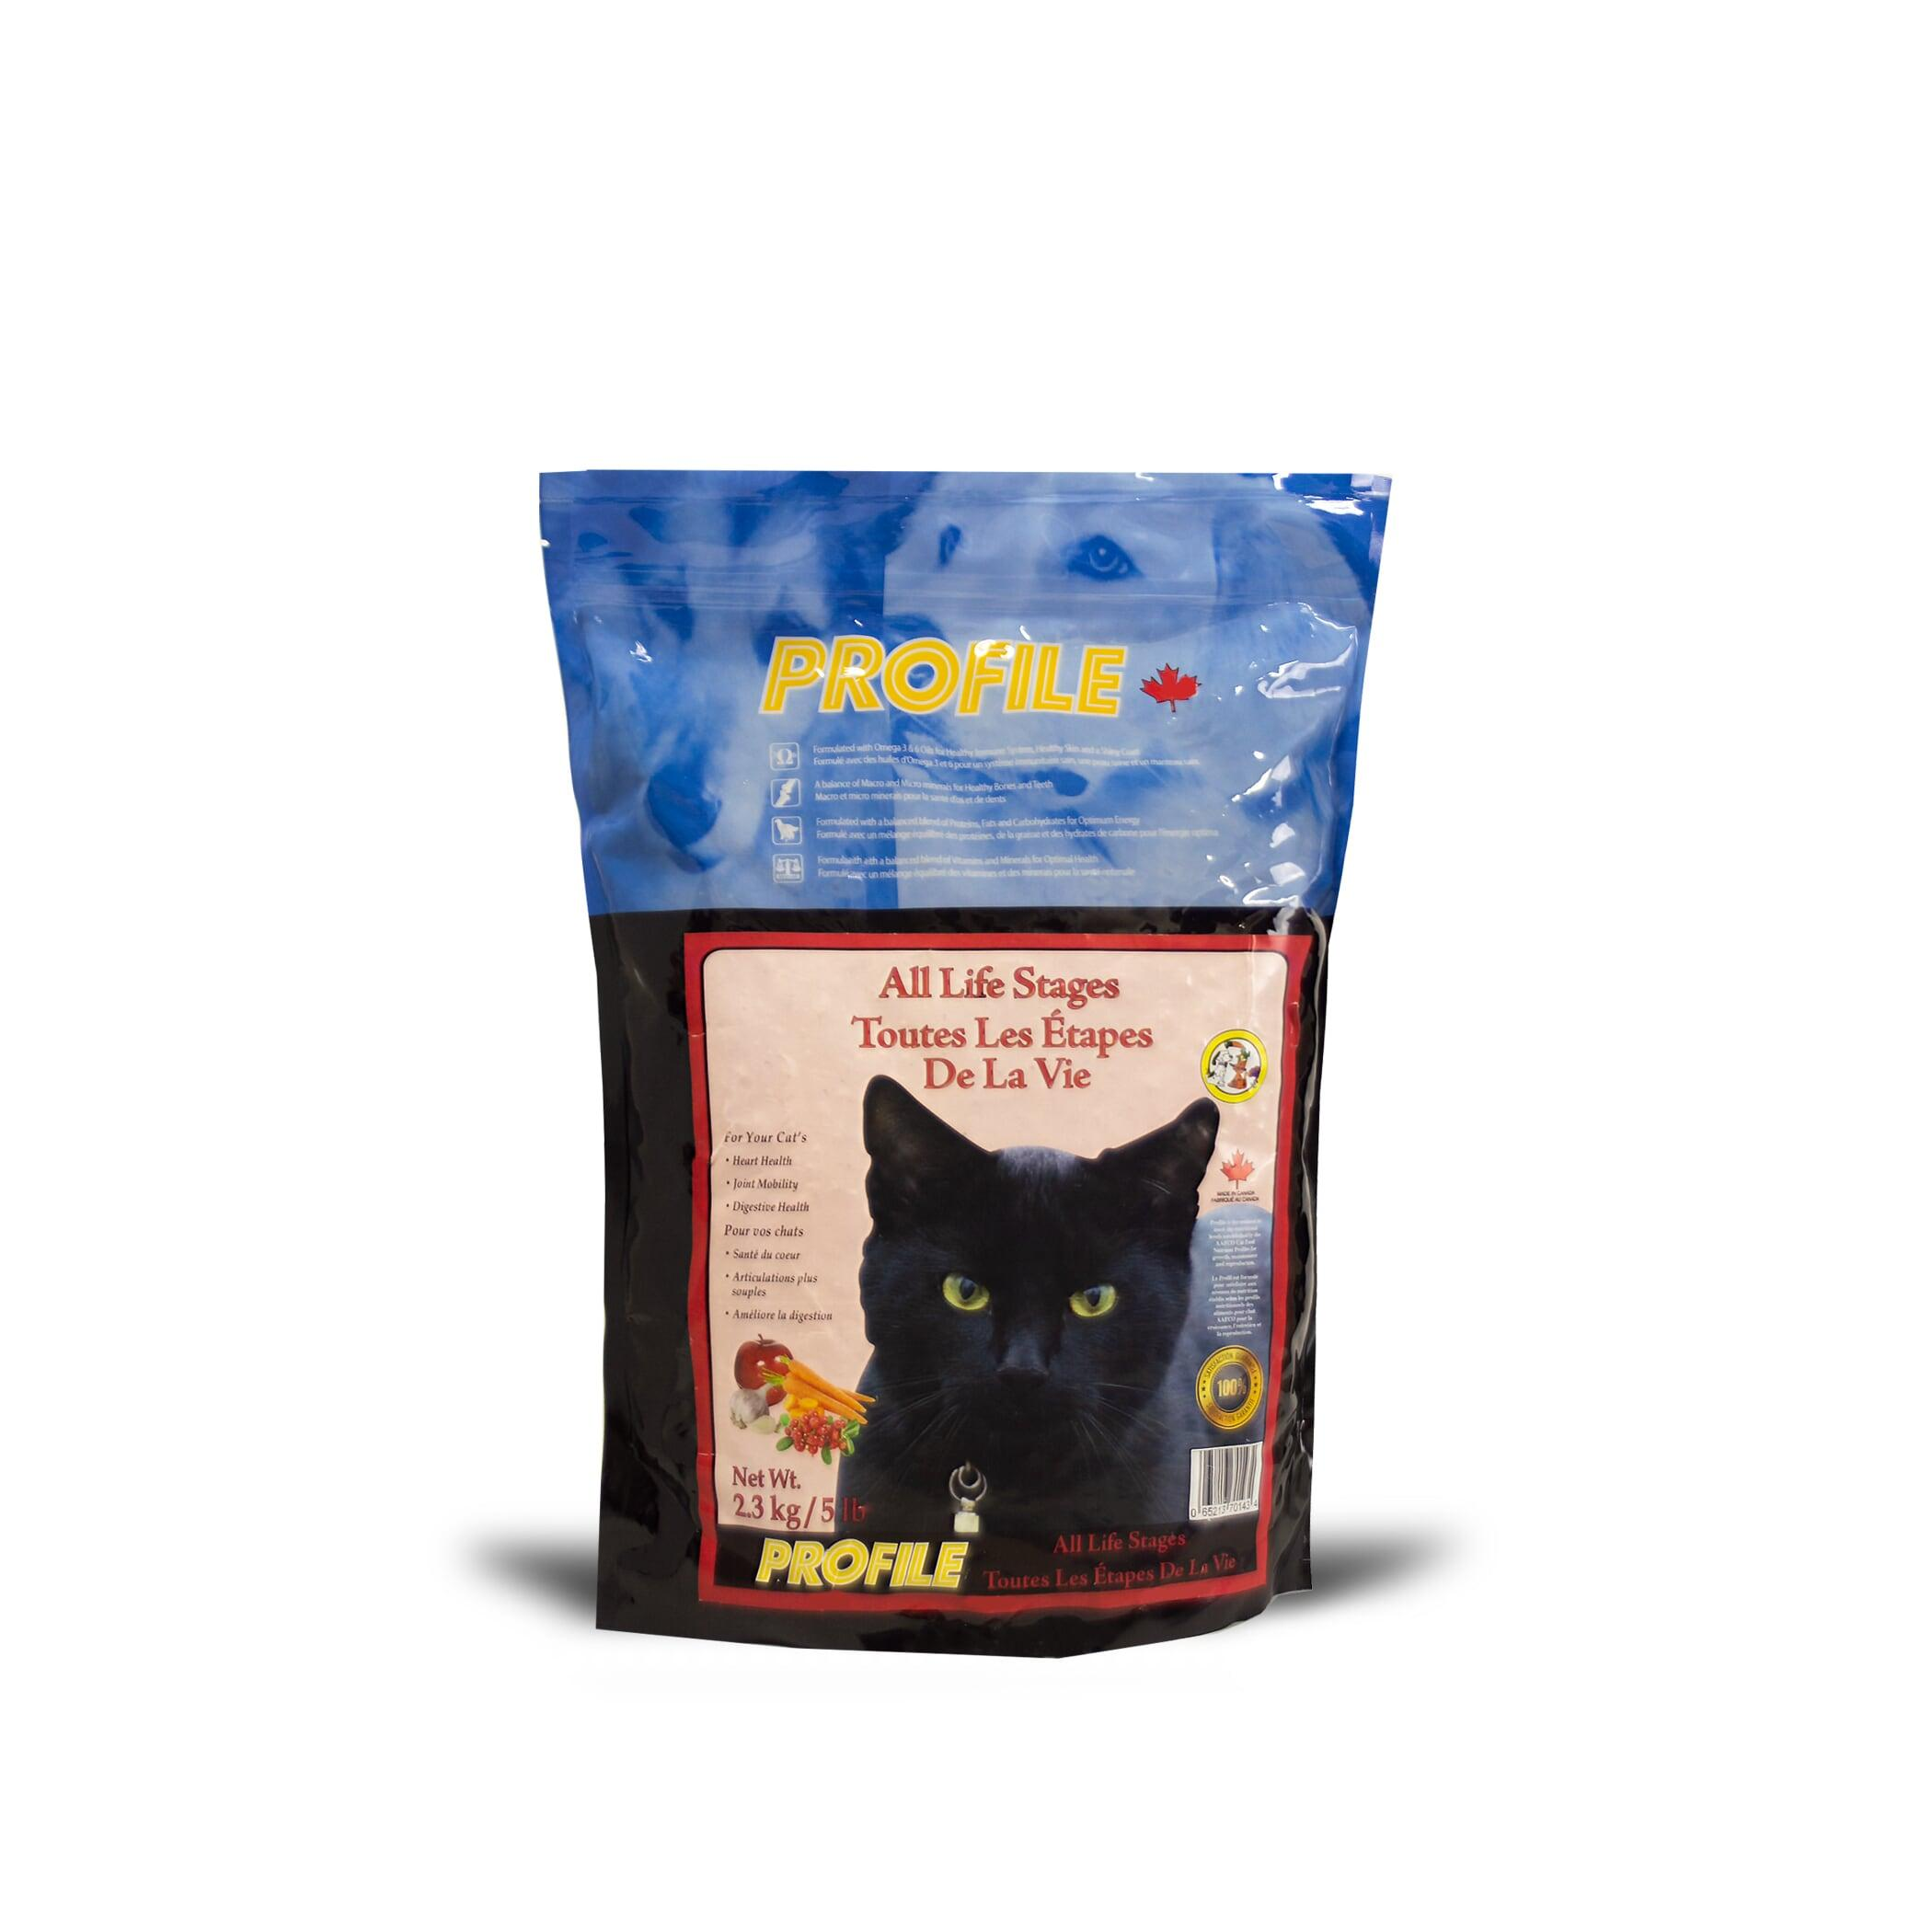 Profile All Life Stages Chicken Dry Cat Food, 2.3-kg Size: 2.3-kg